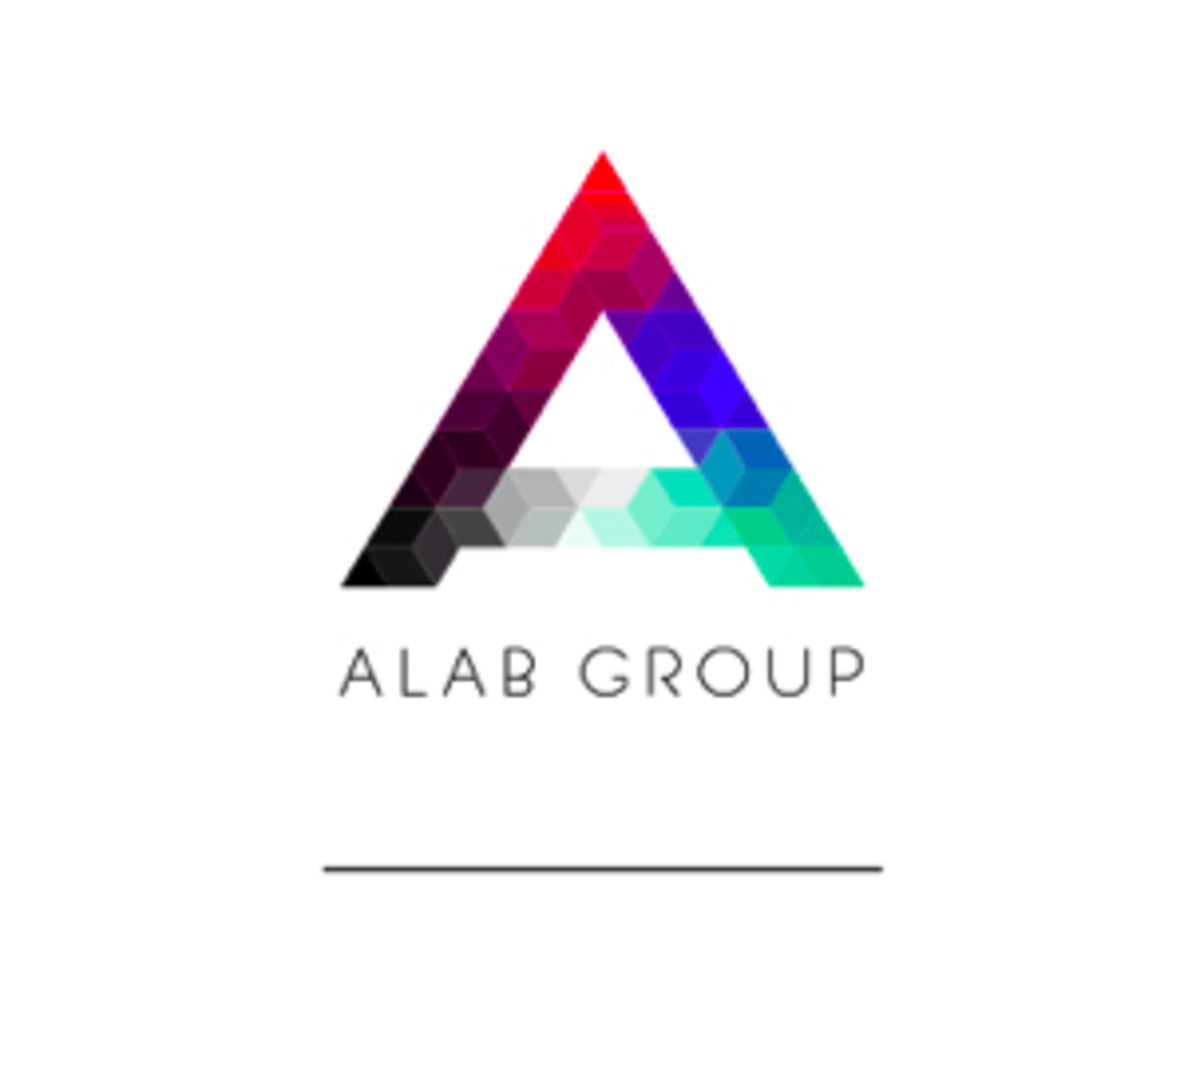 ALAB GROUP Is Hiring A Senior Publicist / Account Executive